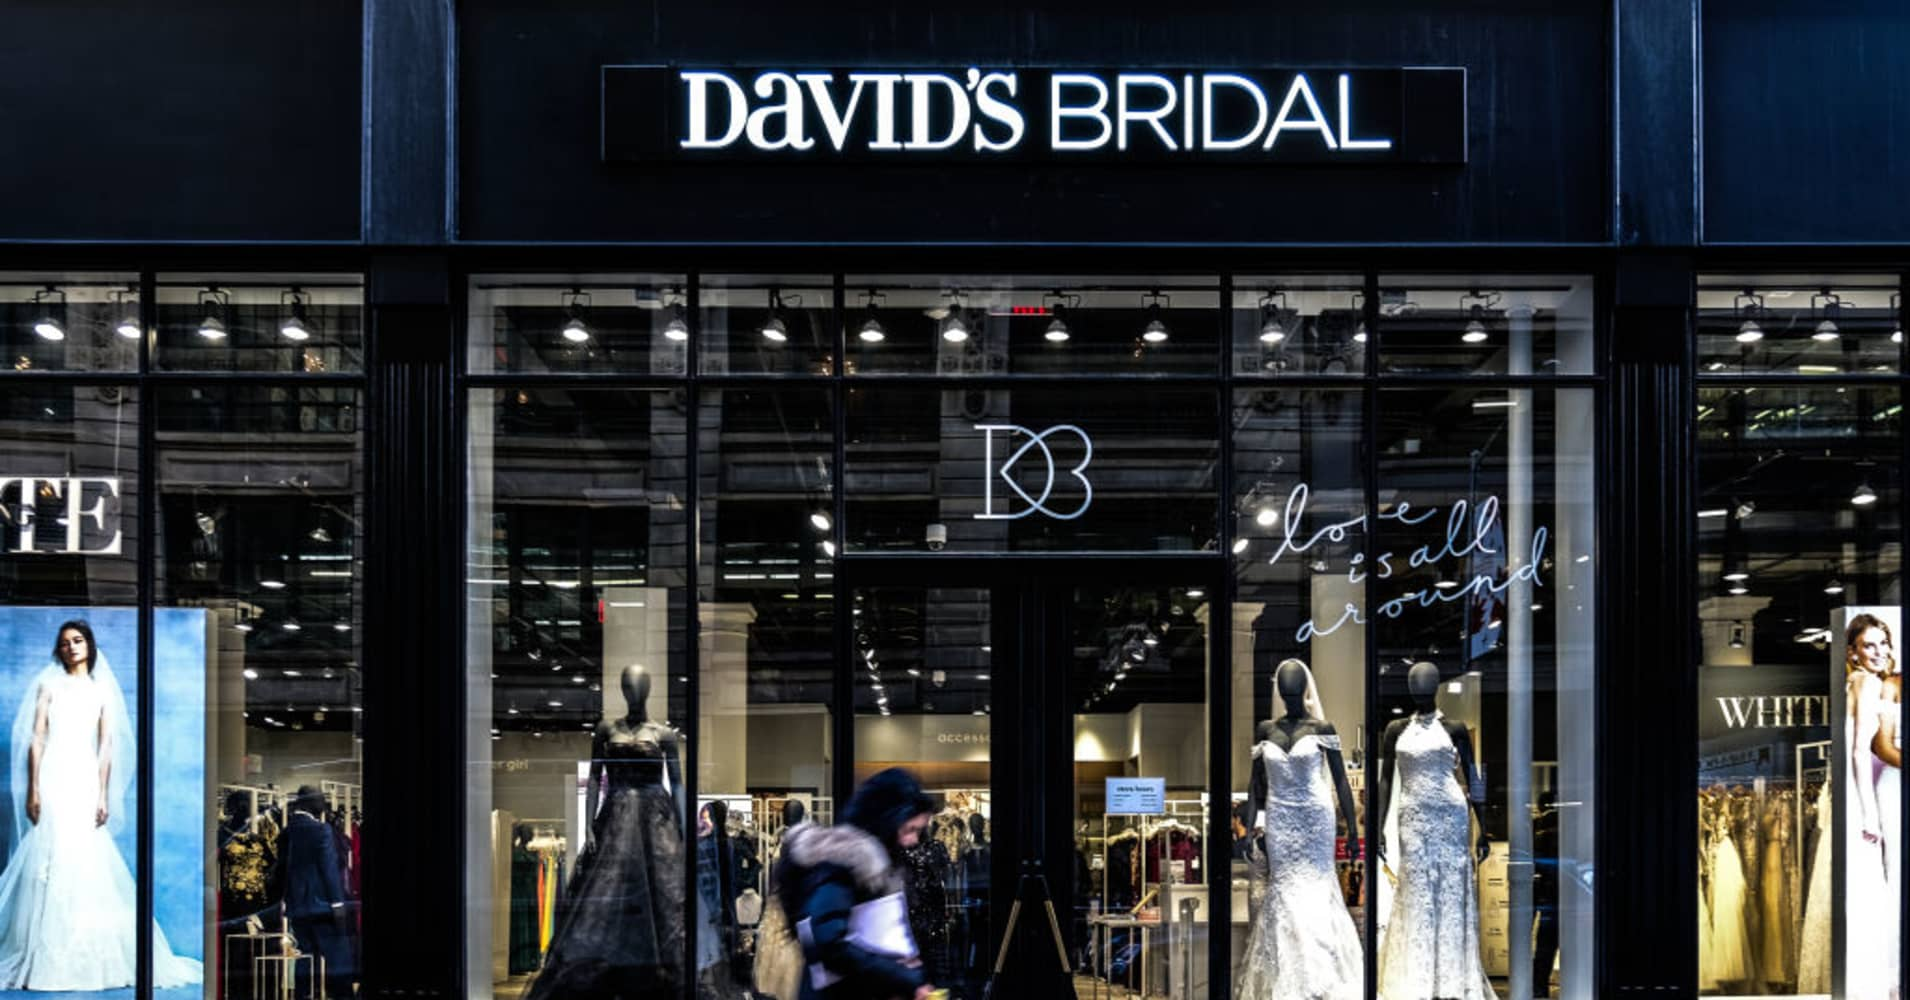 Millennial brides force David's Bridal, fresh out of bankruptcy, to try something new